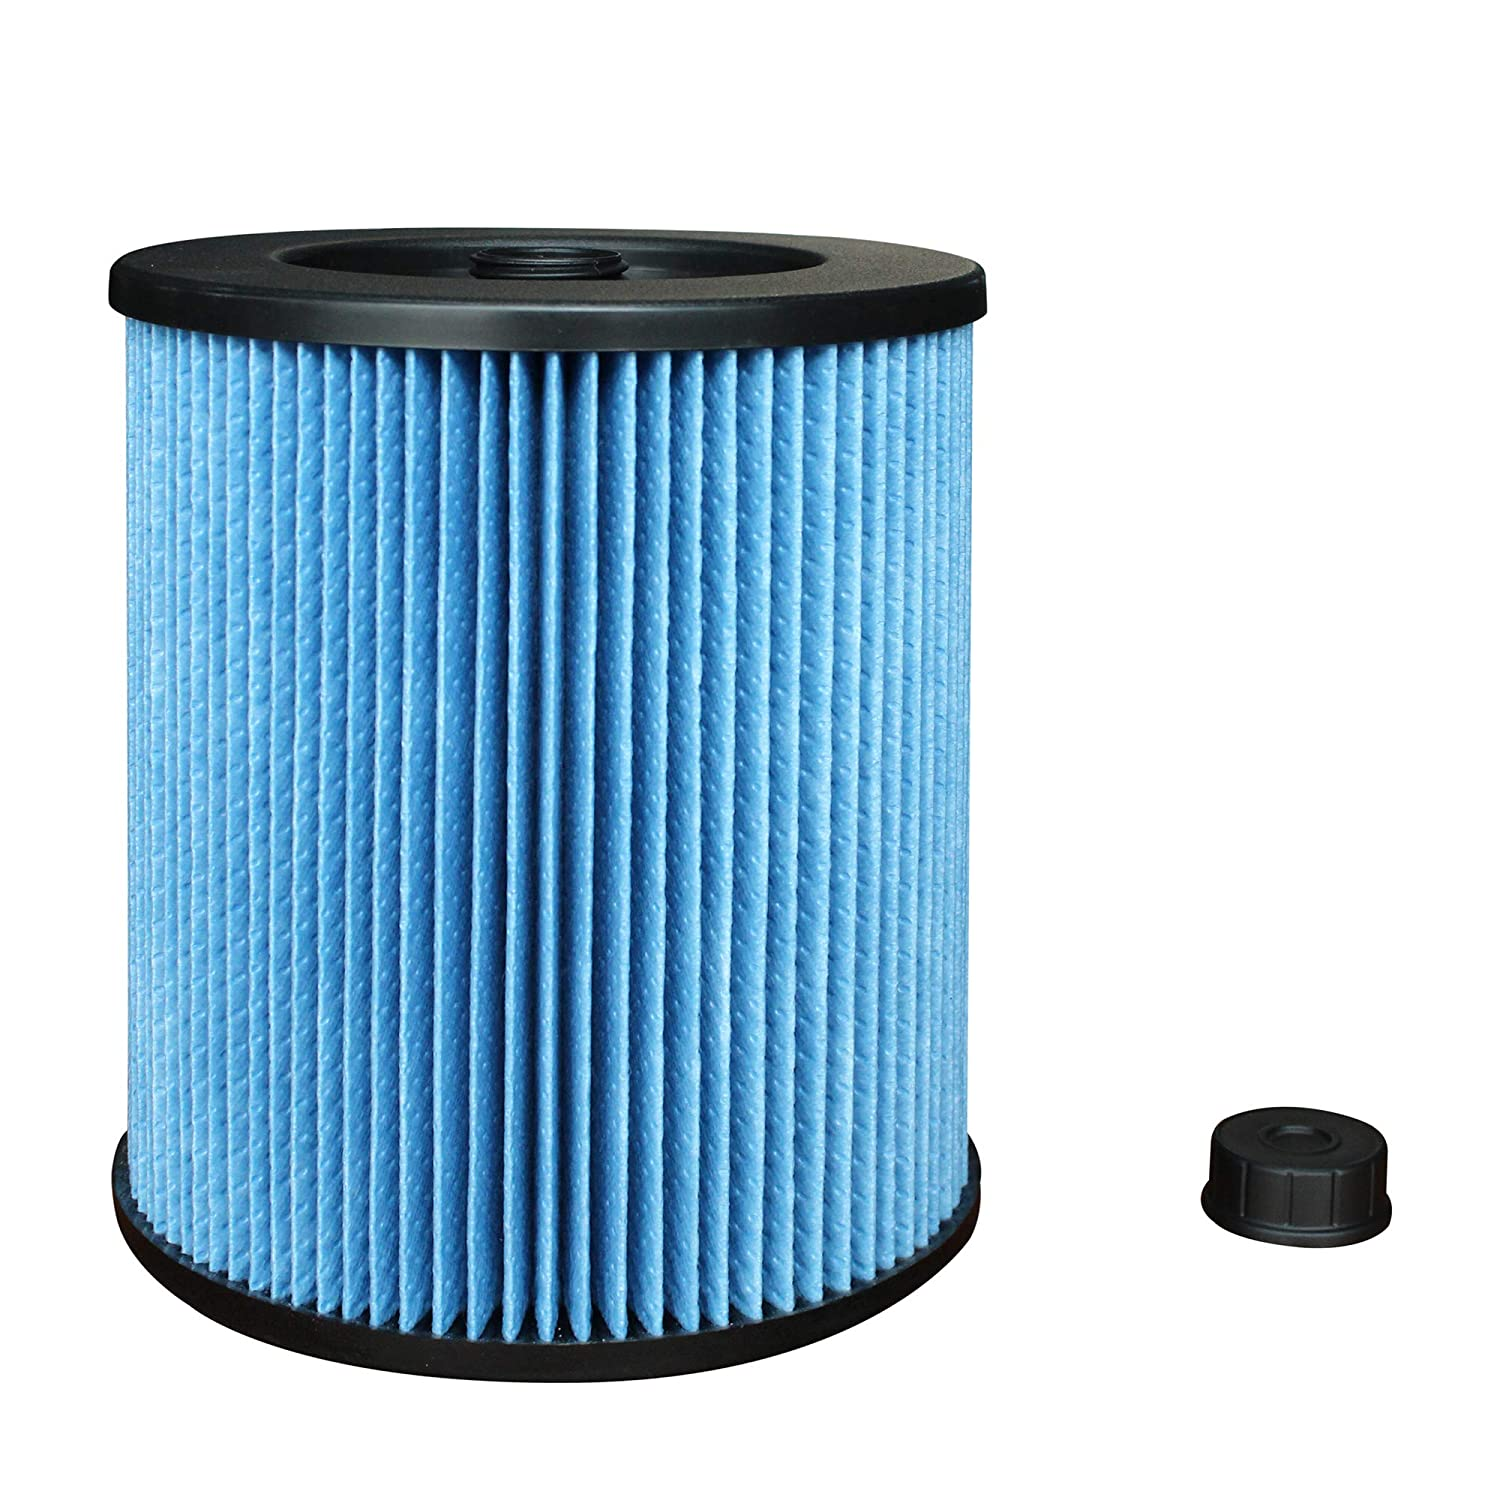 Wet/Dry Cartridge Replacement Filter for Shop Vac Craftsman 17907 9-17907 Vacuum Cleaner Part, 1 Pack